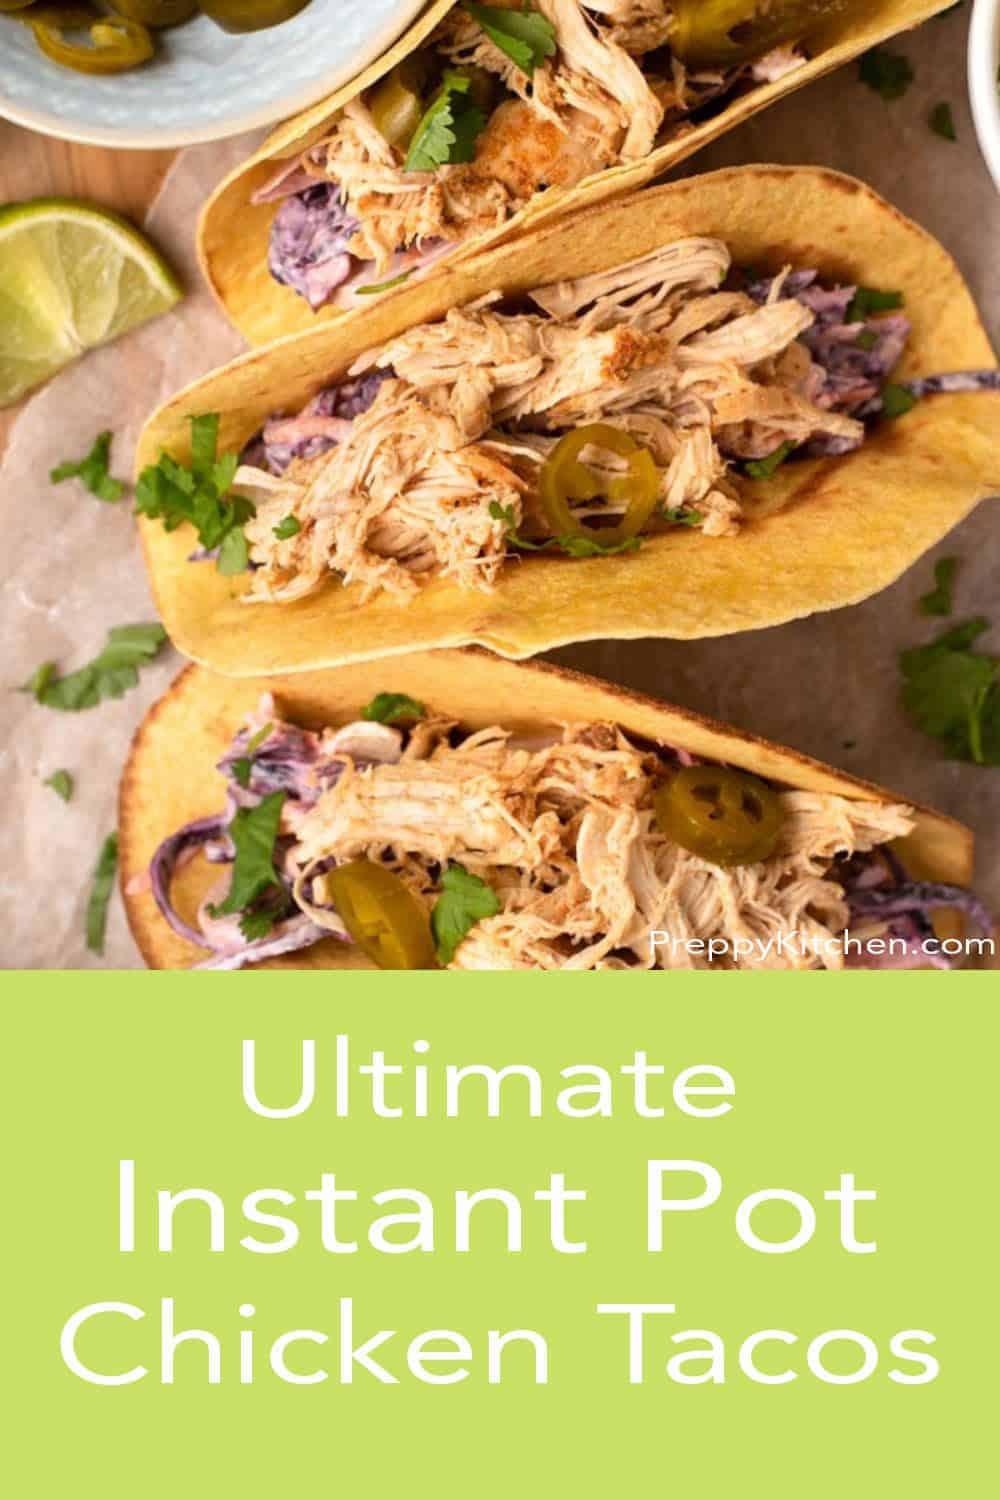 How to make instant coffee in a pot chicken tacos